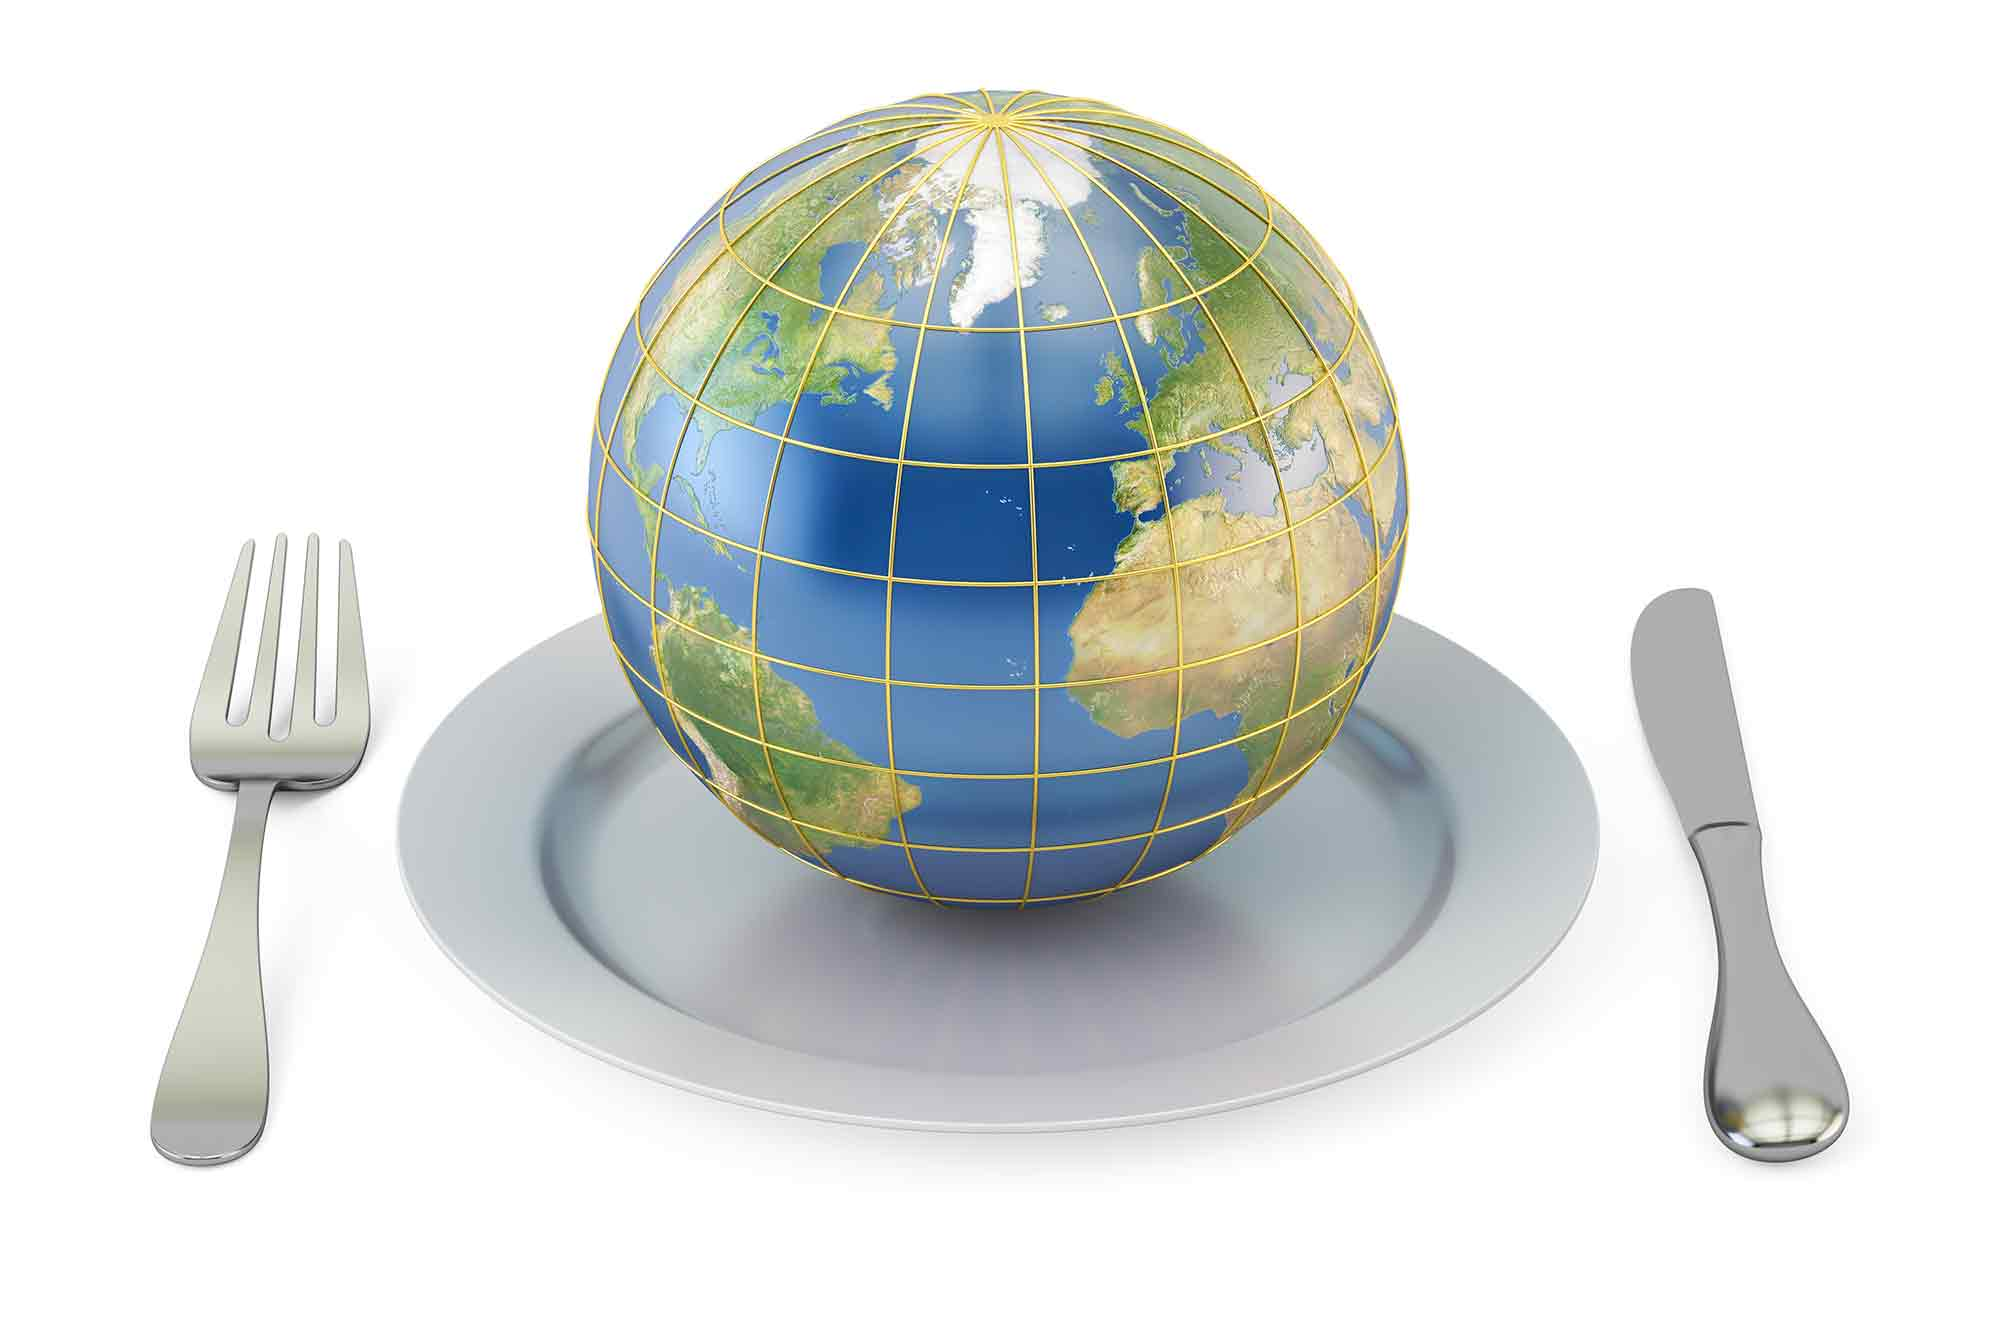 Globe on a plate with a fork and knife on either side Gastrodiplomacy